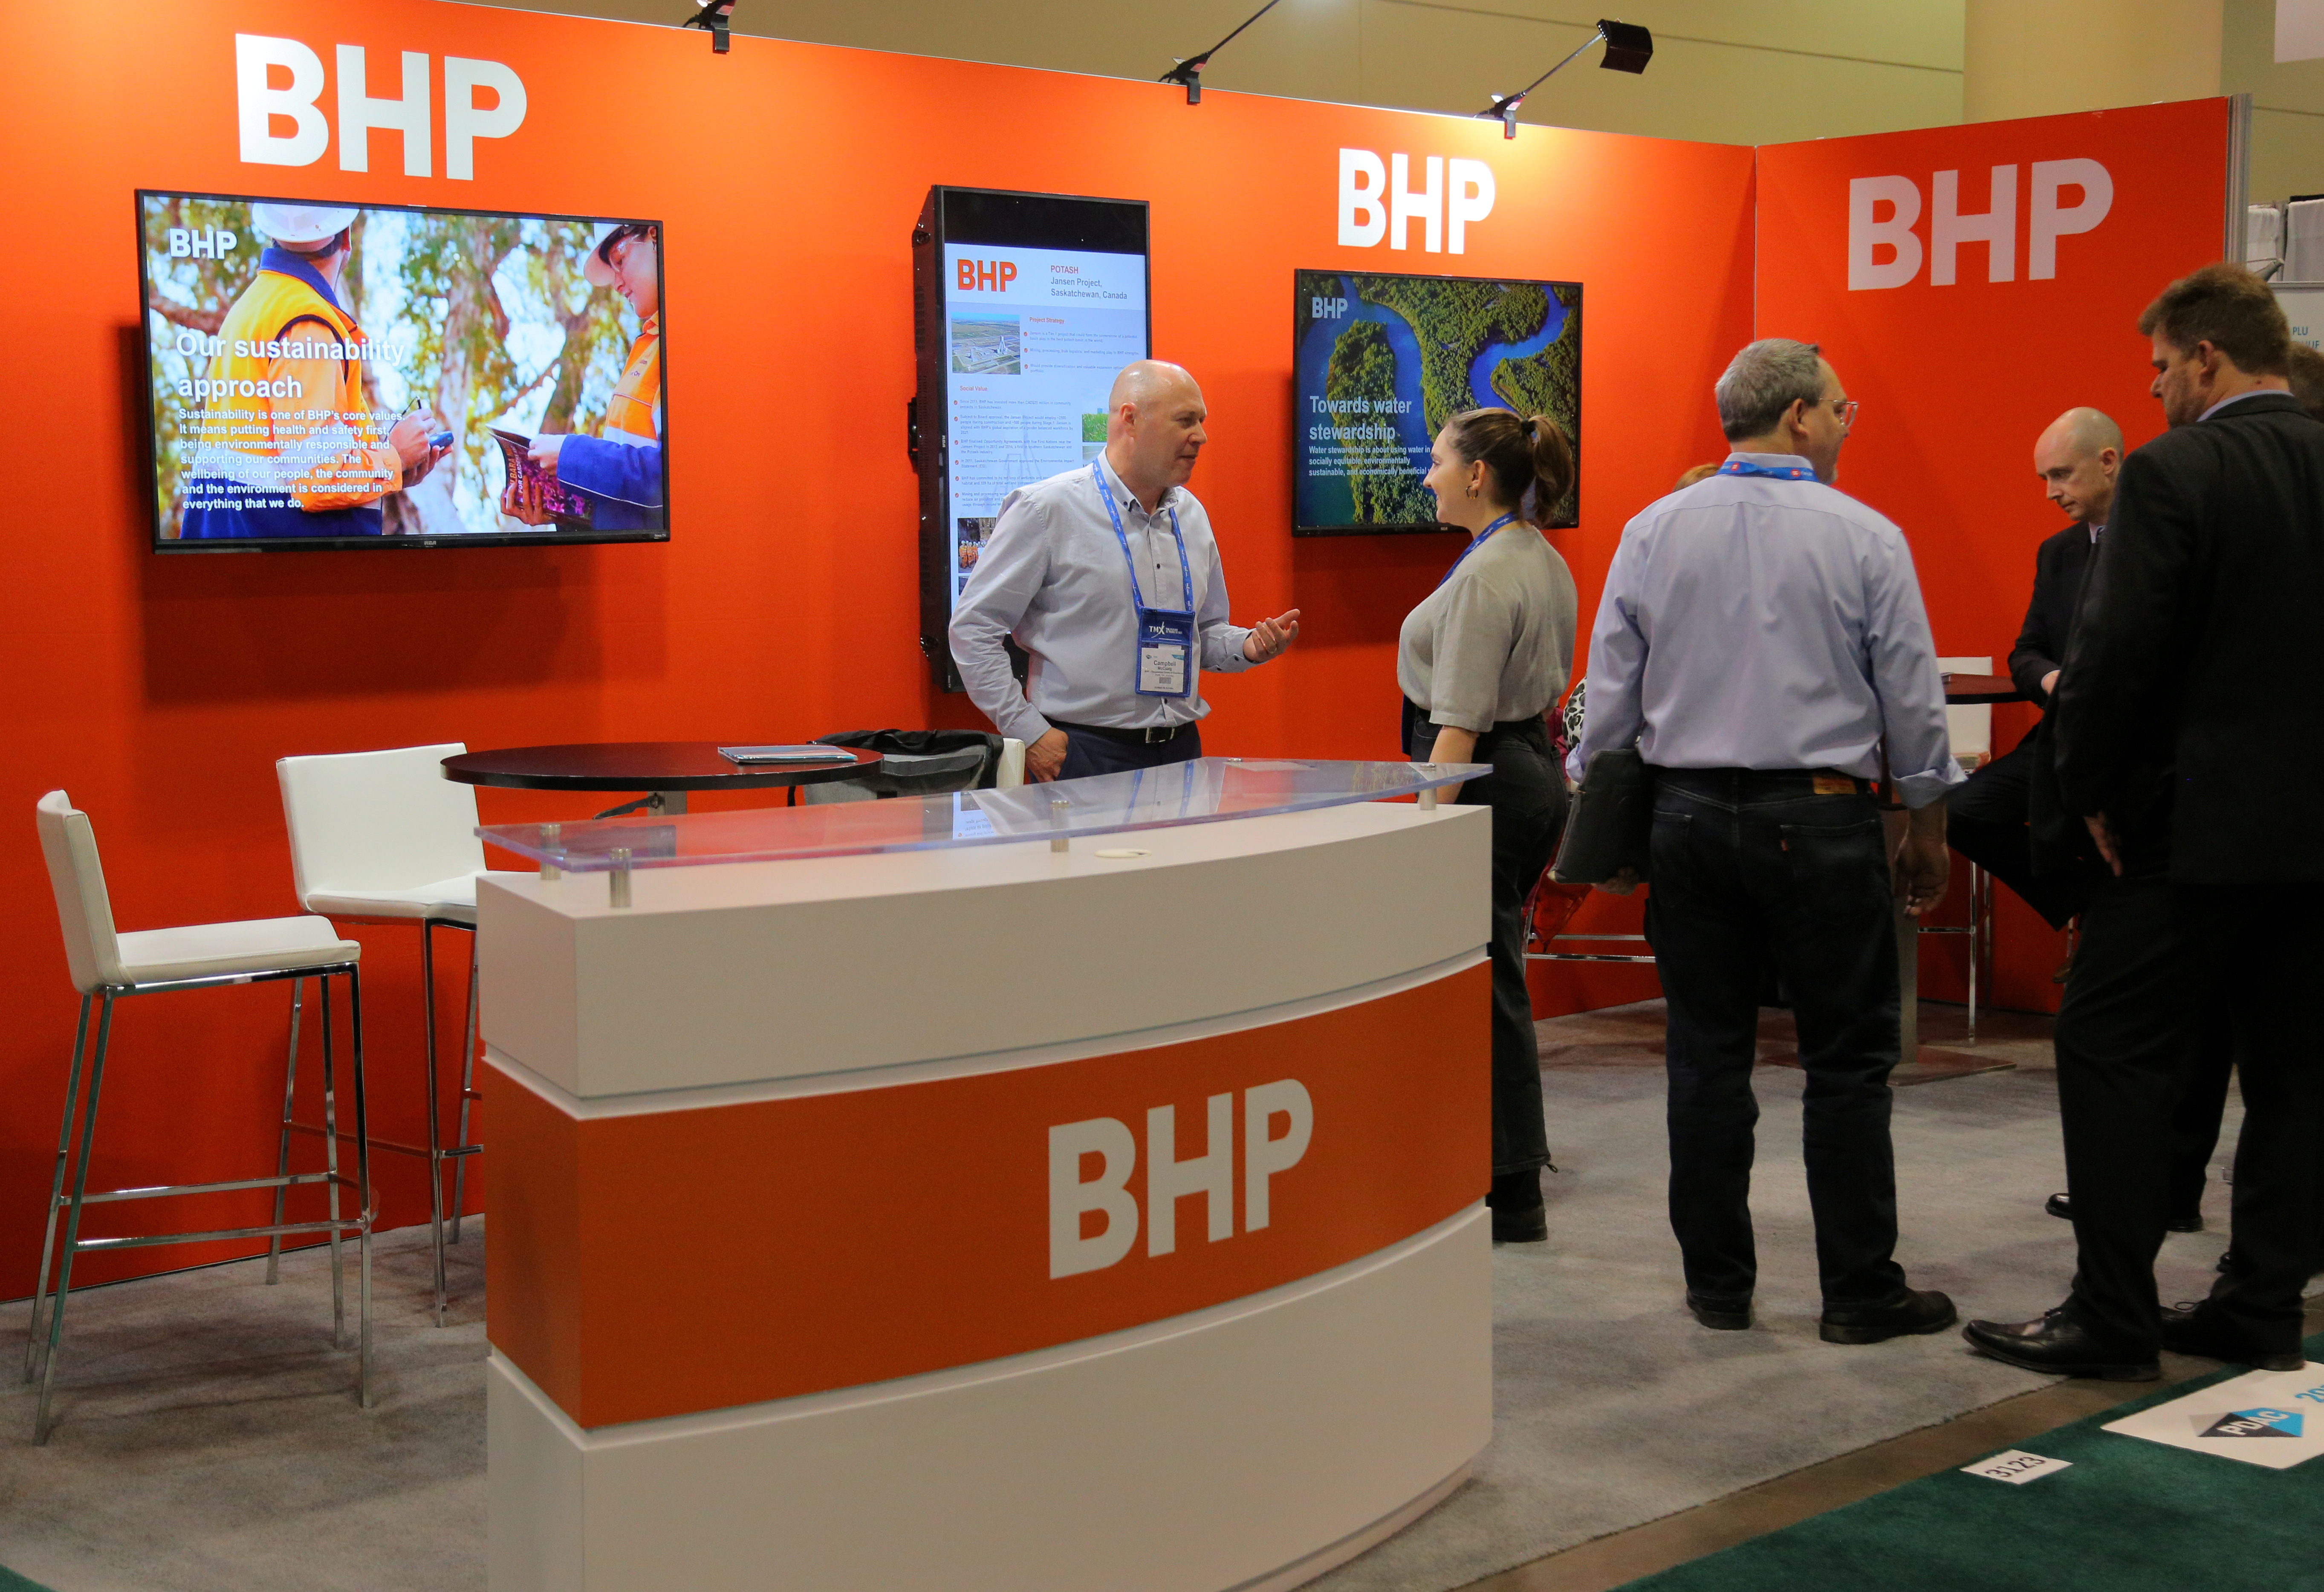 Visitors to the BHP (formerly known as BHP Billiton) booth speak with representatives during the Prospectors and Developers Association of Canada (PDAC) annual convention in Toronto, Ontario, Canada March 4, 2019. REUTERS/Chris Helgren/File Photo